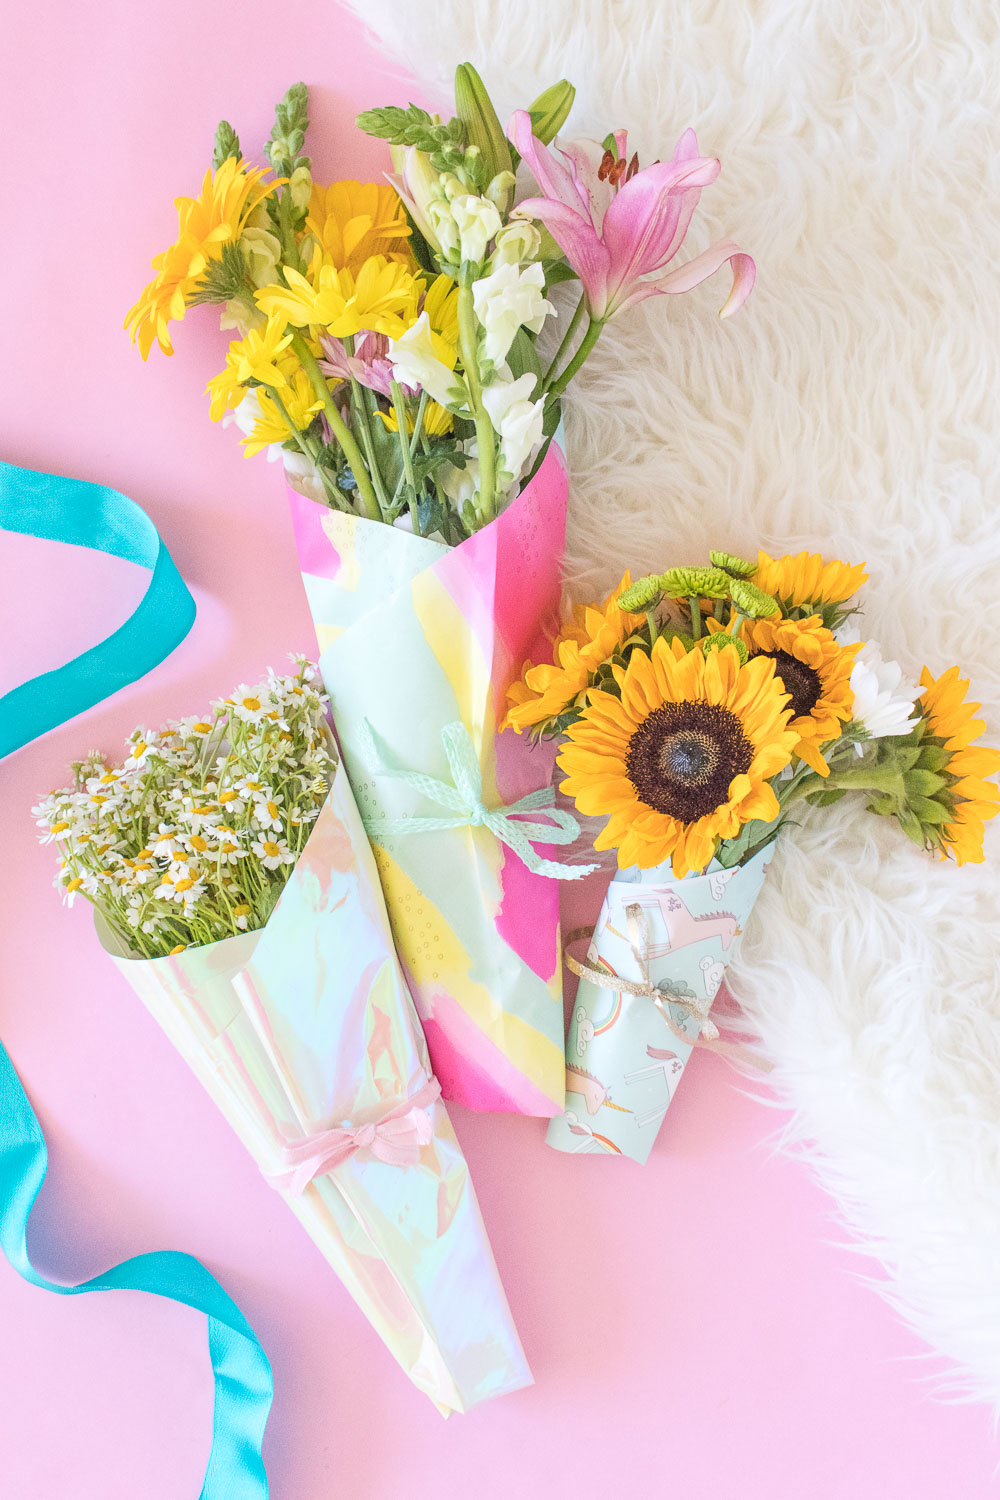 Bouquets for Days: How to Wrap Flower Bouquets with Wrapping Paper | Club Crafted